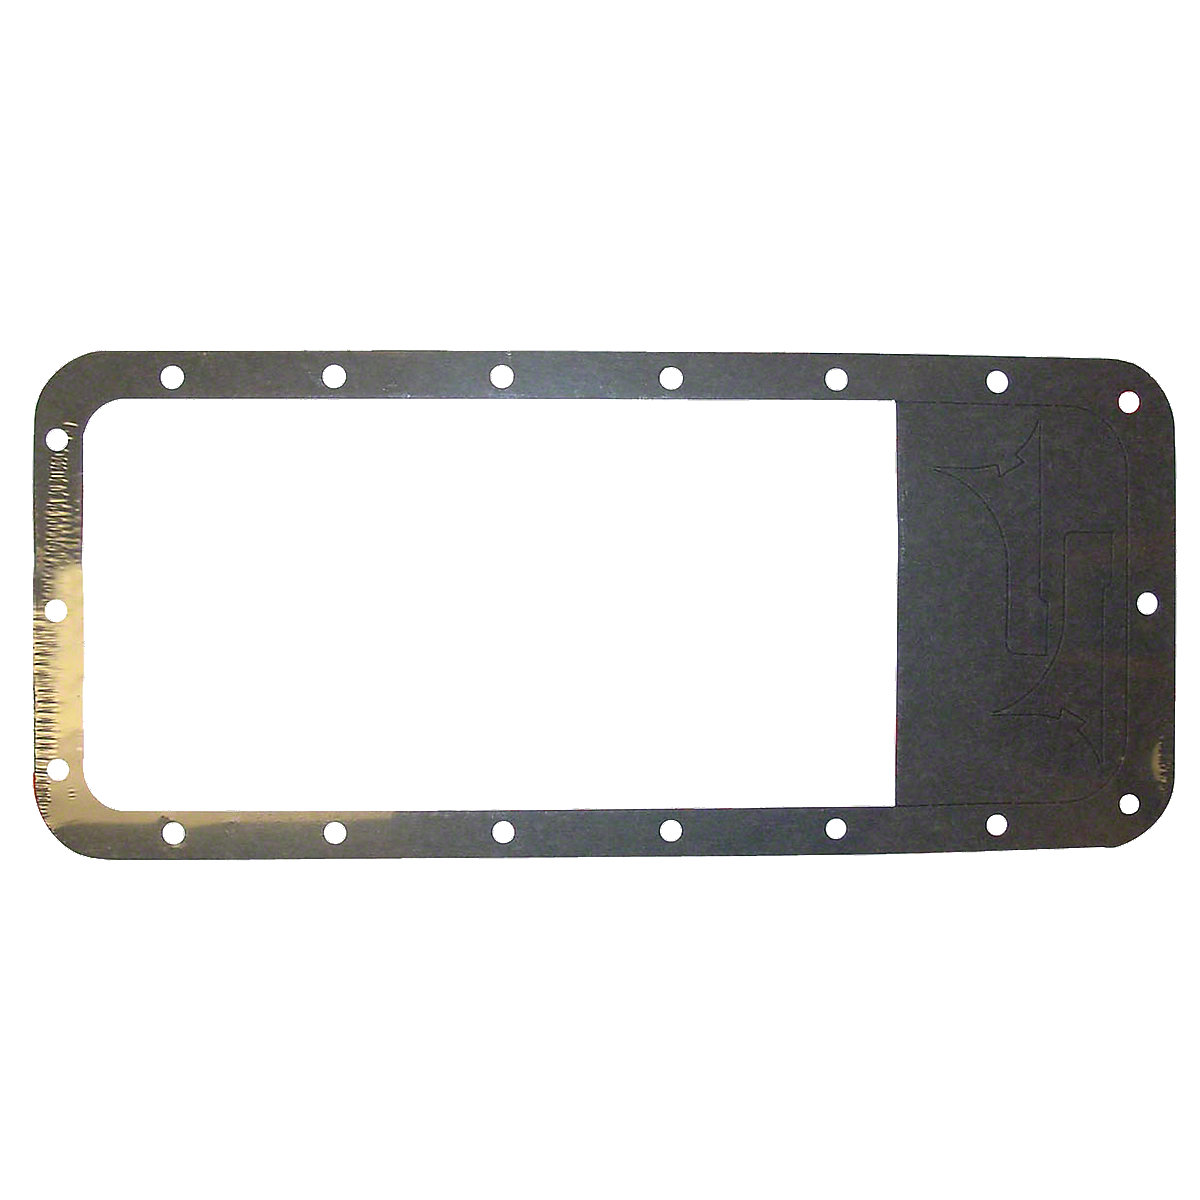 Oil Pan Gasket For Massey Ferguson: TE20, TO20, TO30, TO35, 135, 150, 202, 204, 20C, 230, 235, 245, 2135, 2200, 2500, 30B, 4500, 35, 40, 50.